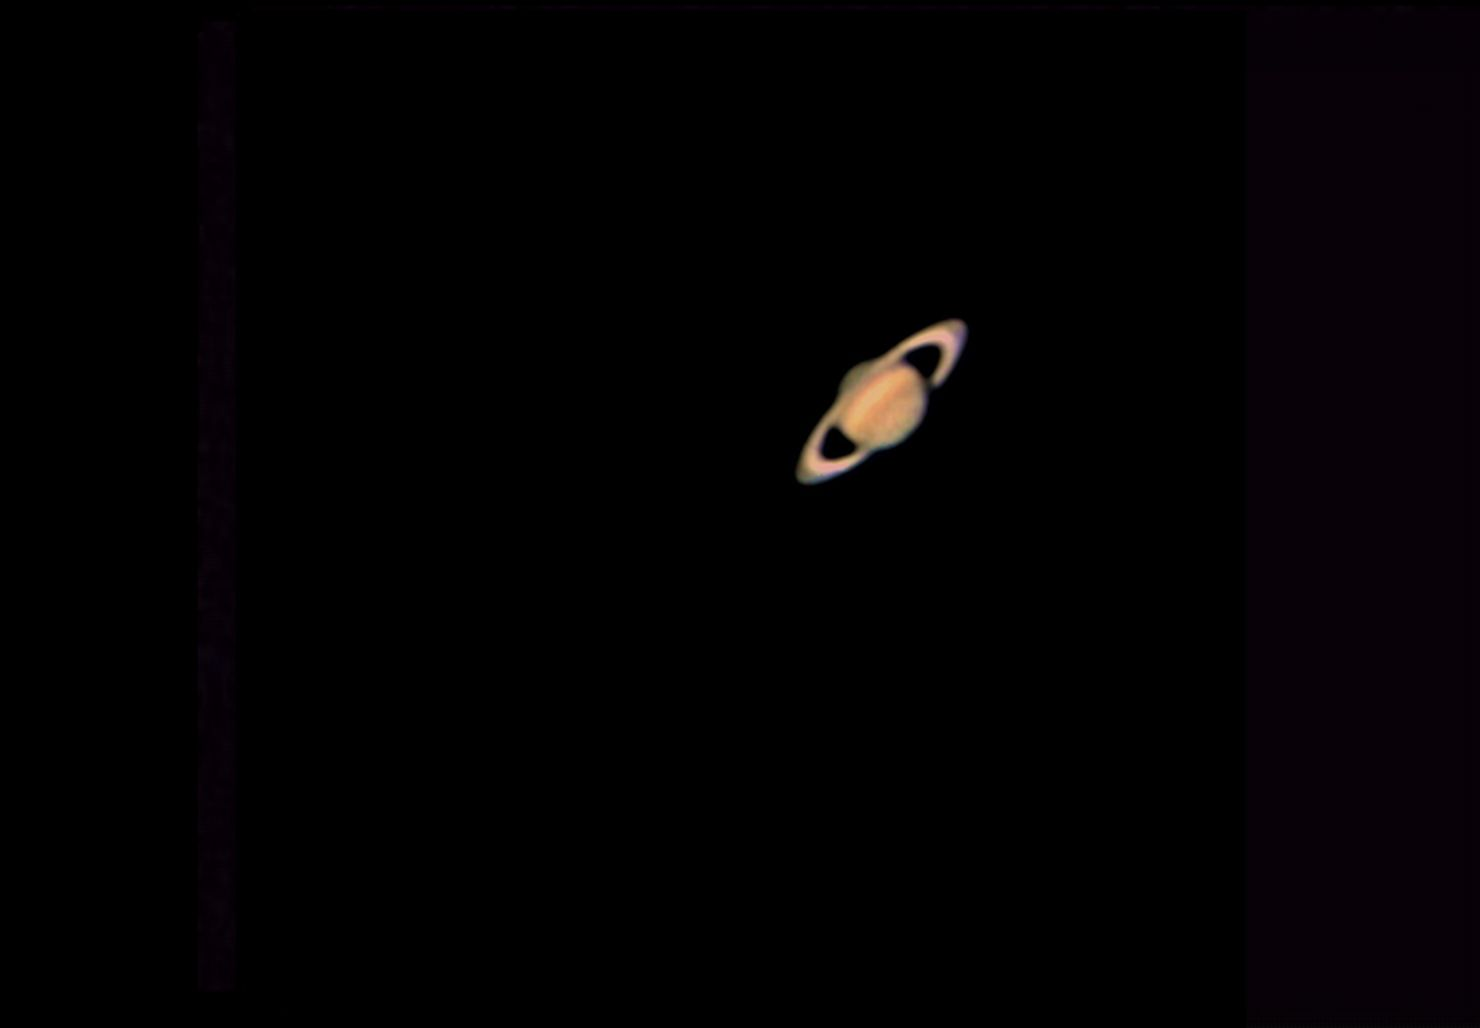 Saturn 6-19-13 at Orion Store